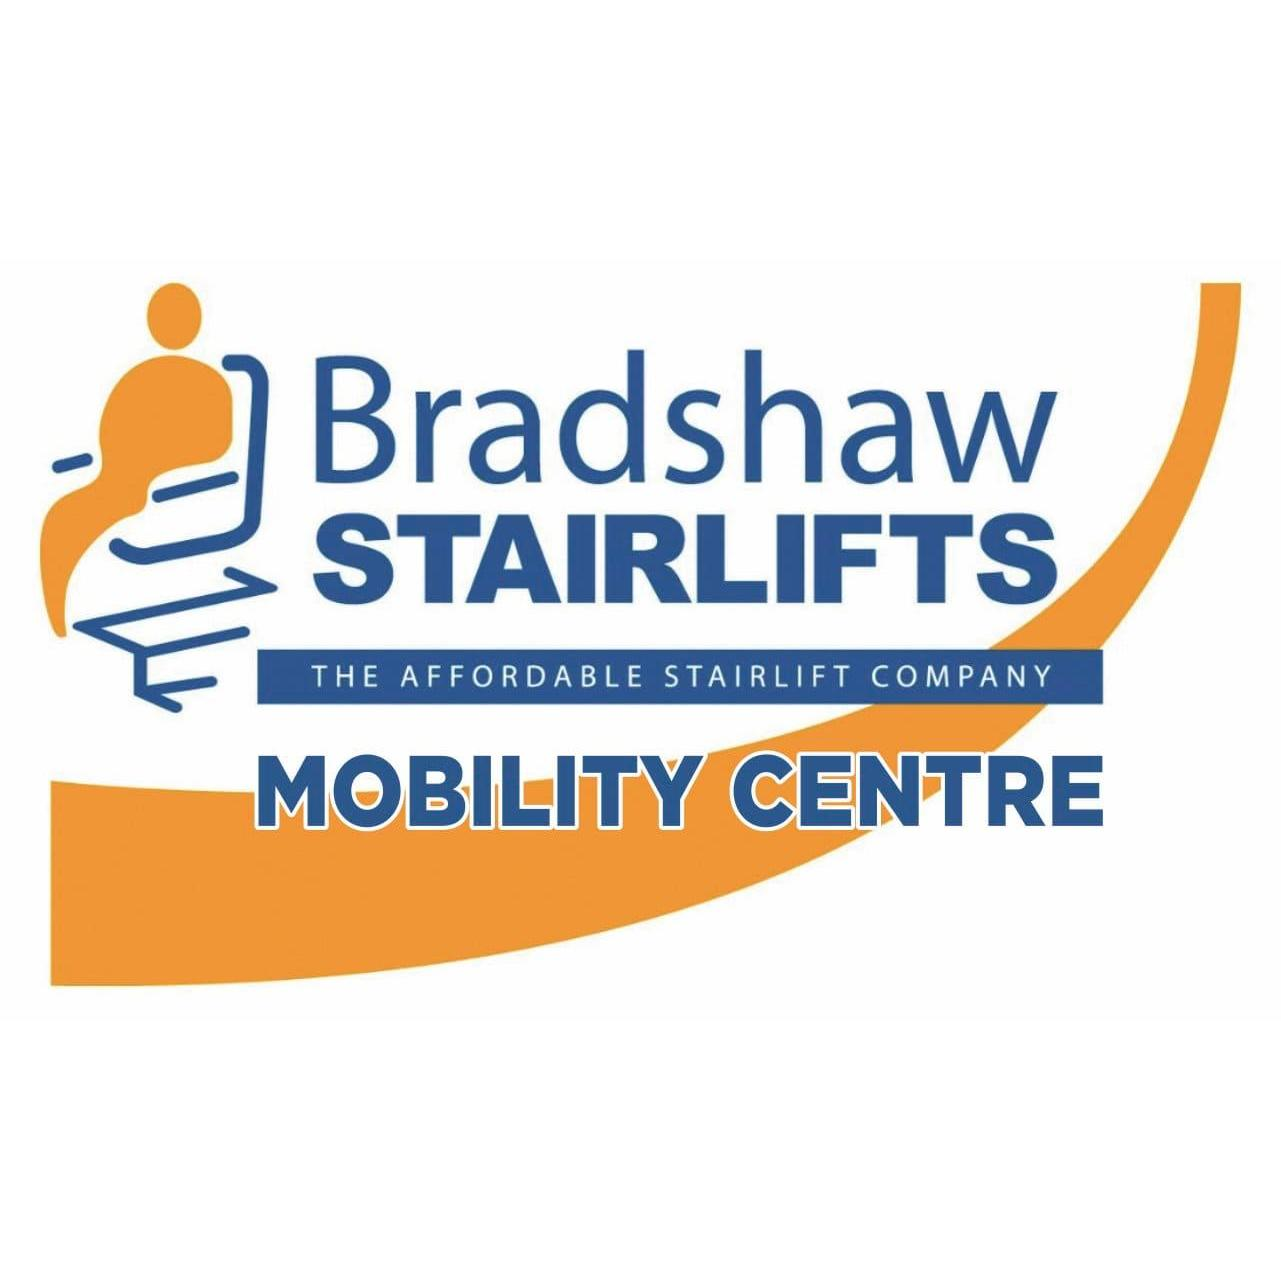 Bradshaw Stairlifts Mobility Centre - Chigwell, London IG7 4DJ - 020 8252 8192 | ShowMeLocal.com